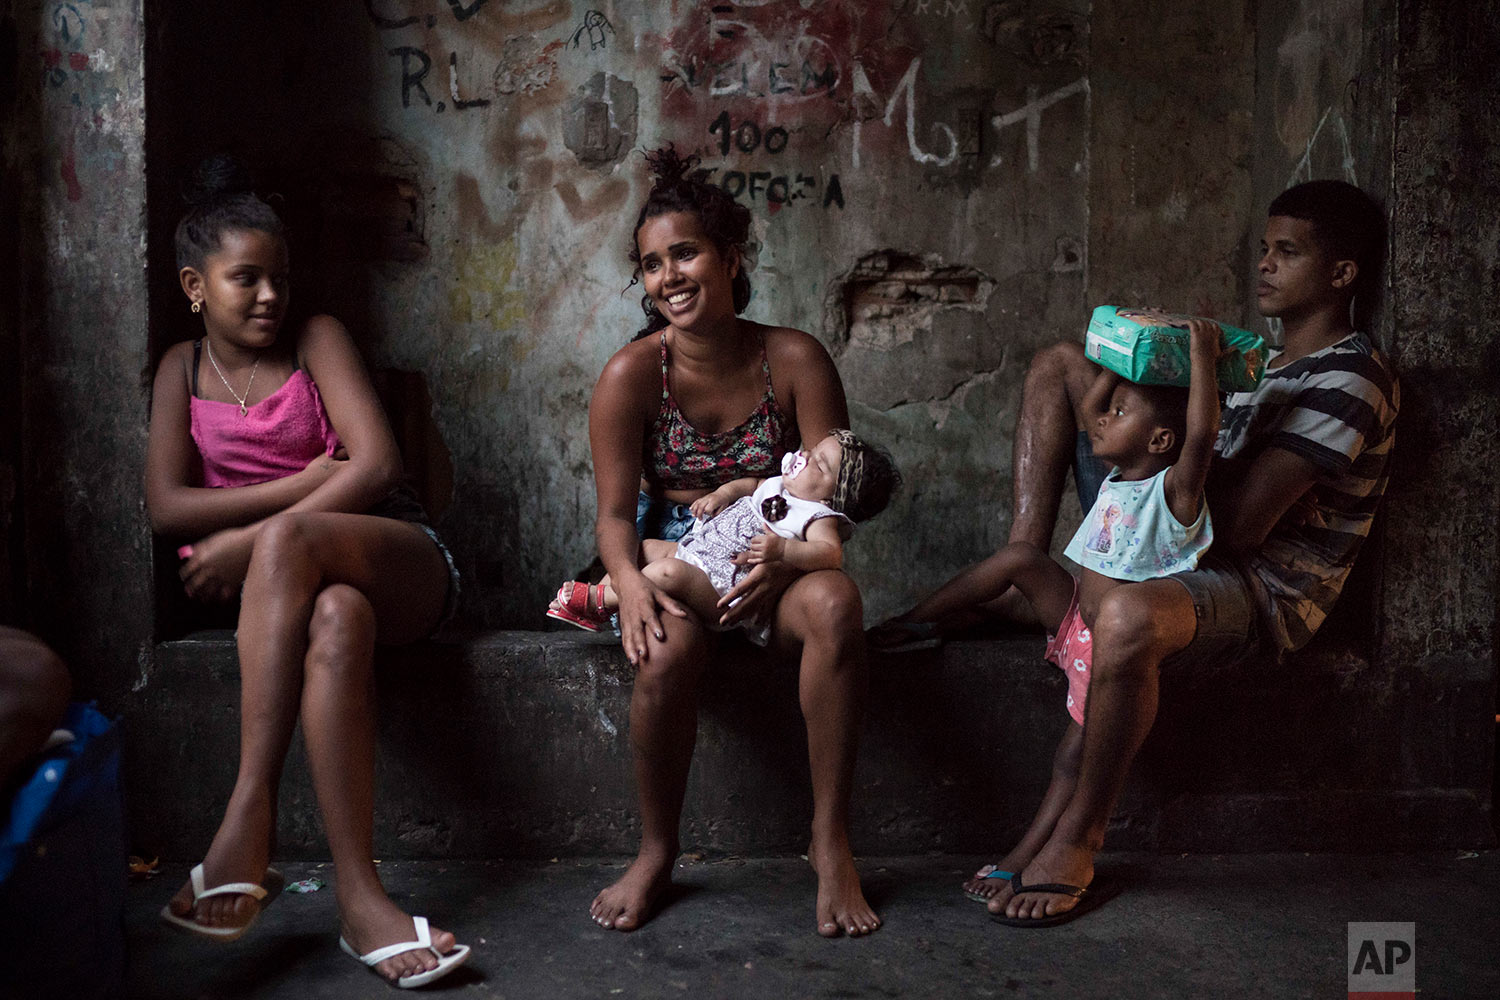 In this Sept. 9, 2017 photo, residents sit in a corridor inside a squatter building that used to house the Brazilian Institute of Geography and Statistics (IBGE) in the Mangueira slum of Rio de Janeiro, Brazil. Despite the hardscrabble existence, there is a strong sense of community among the hundreds of people occupying the building. (AP Photo/Felipe Dana)